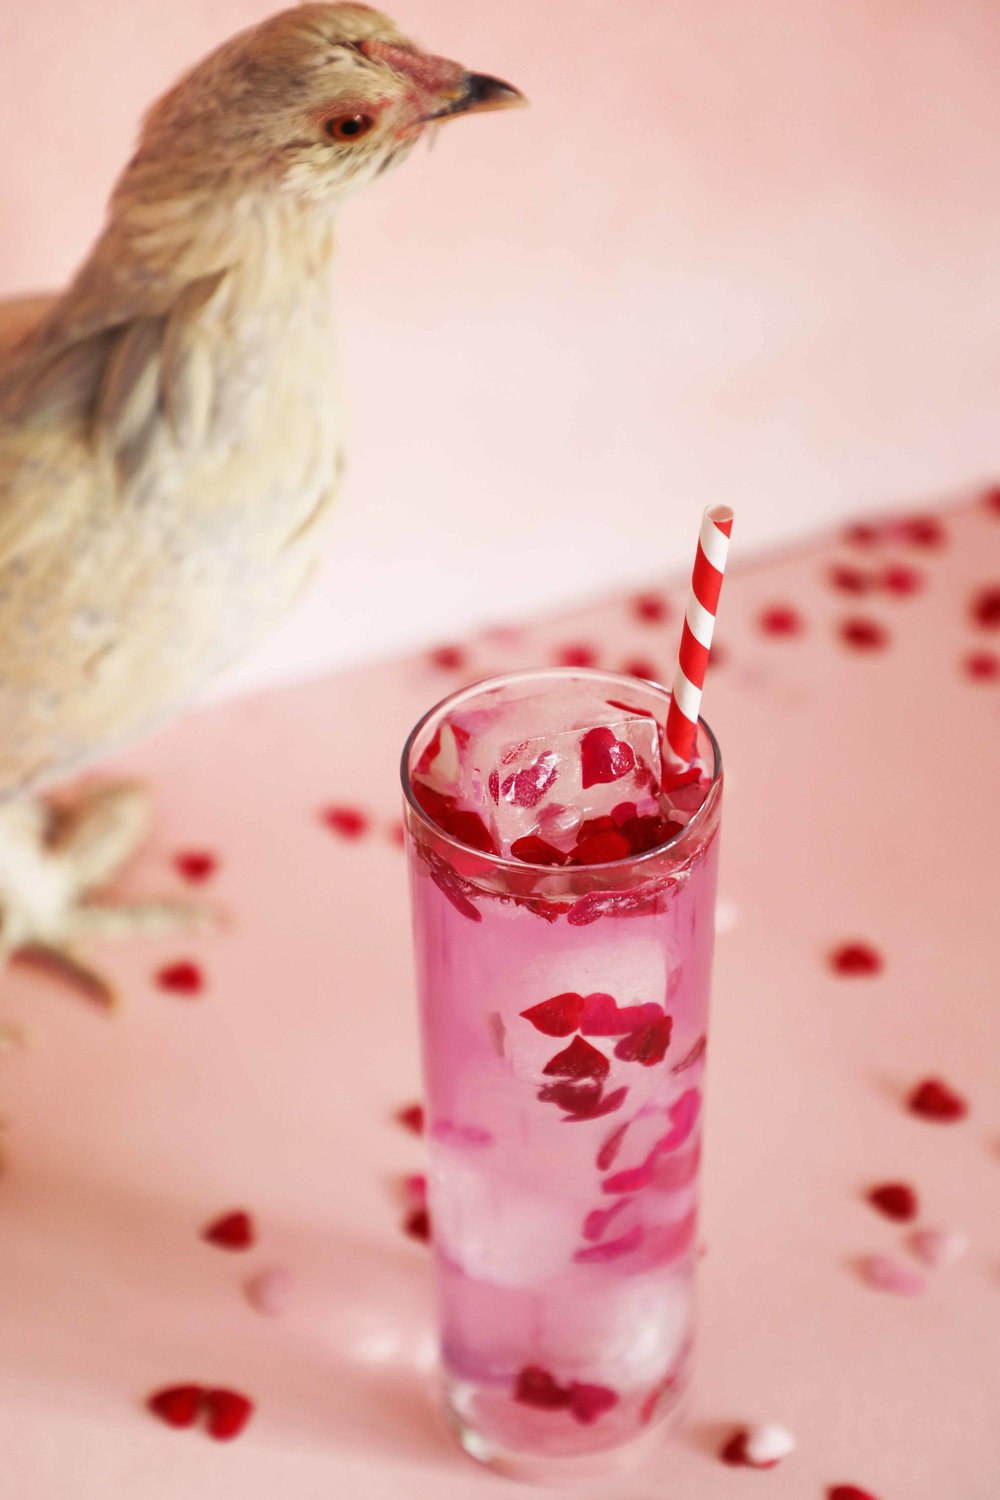 Hearts + Butterflies Gin + Tonic made with color-changing EmpressGin 1908, heart-shaped rose petal confetti, rosewater, lemon, and tonic | drinkingwithchickens.com